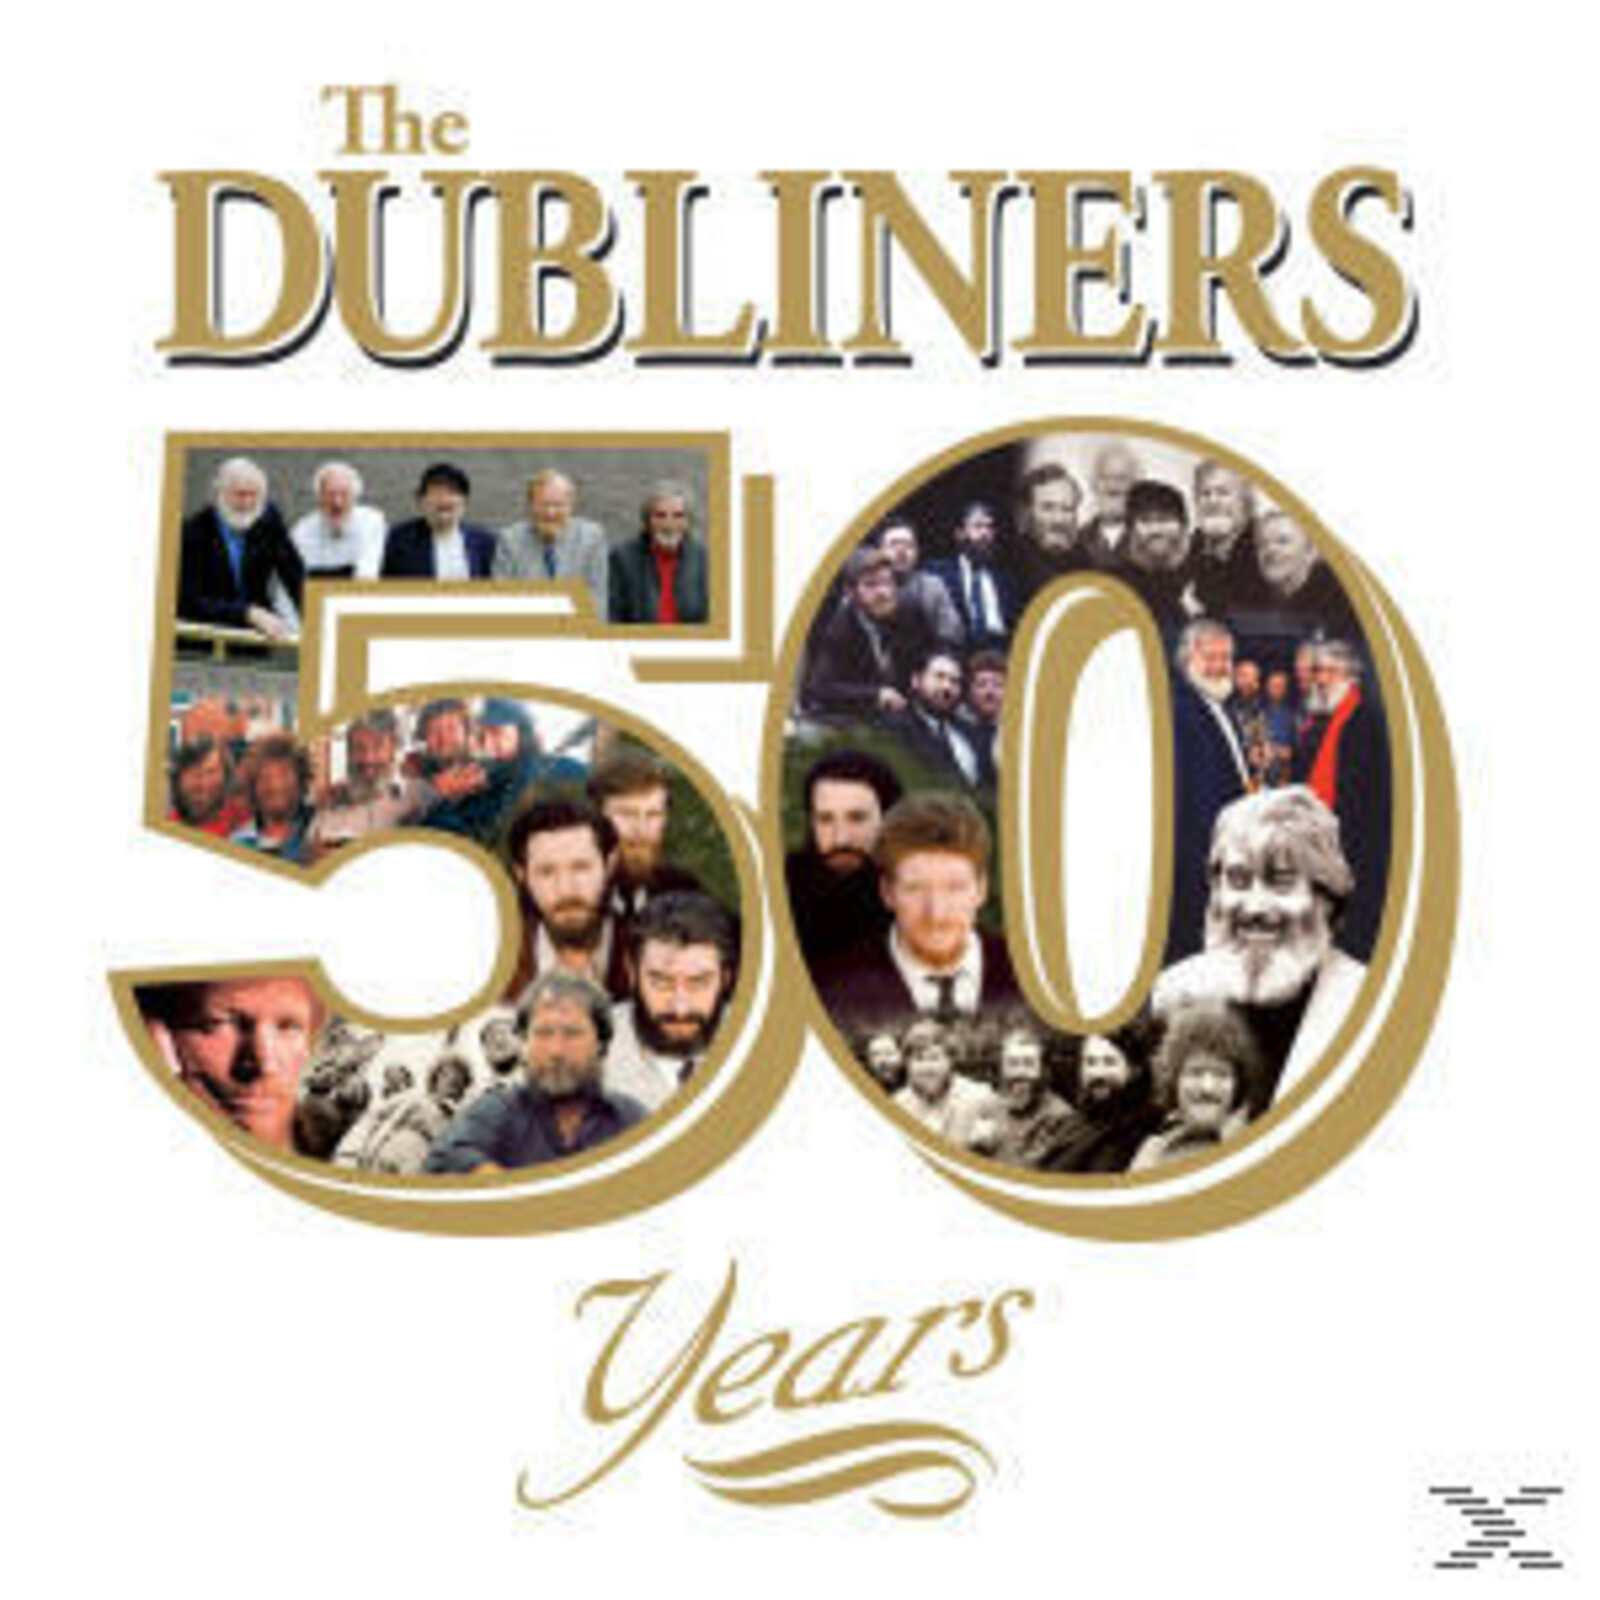 The Dubliners - 50 Years - (CD)